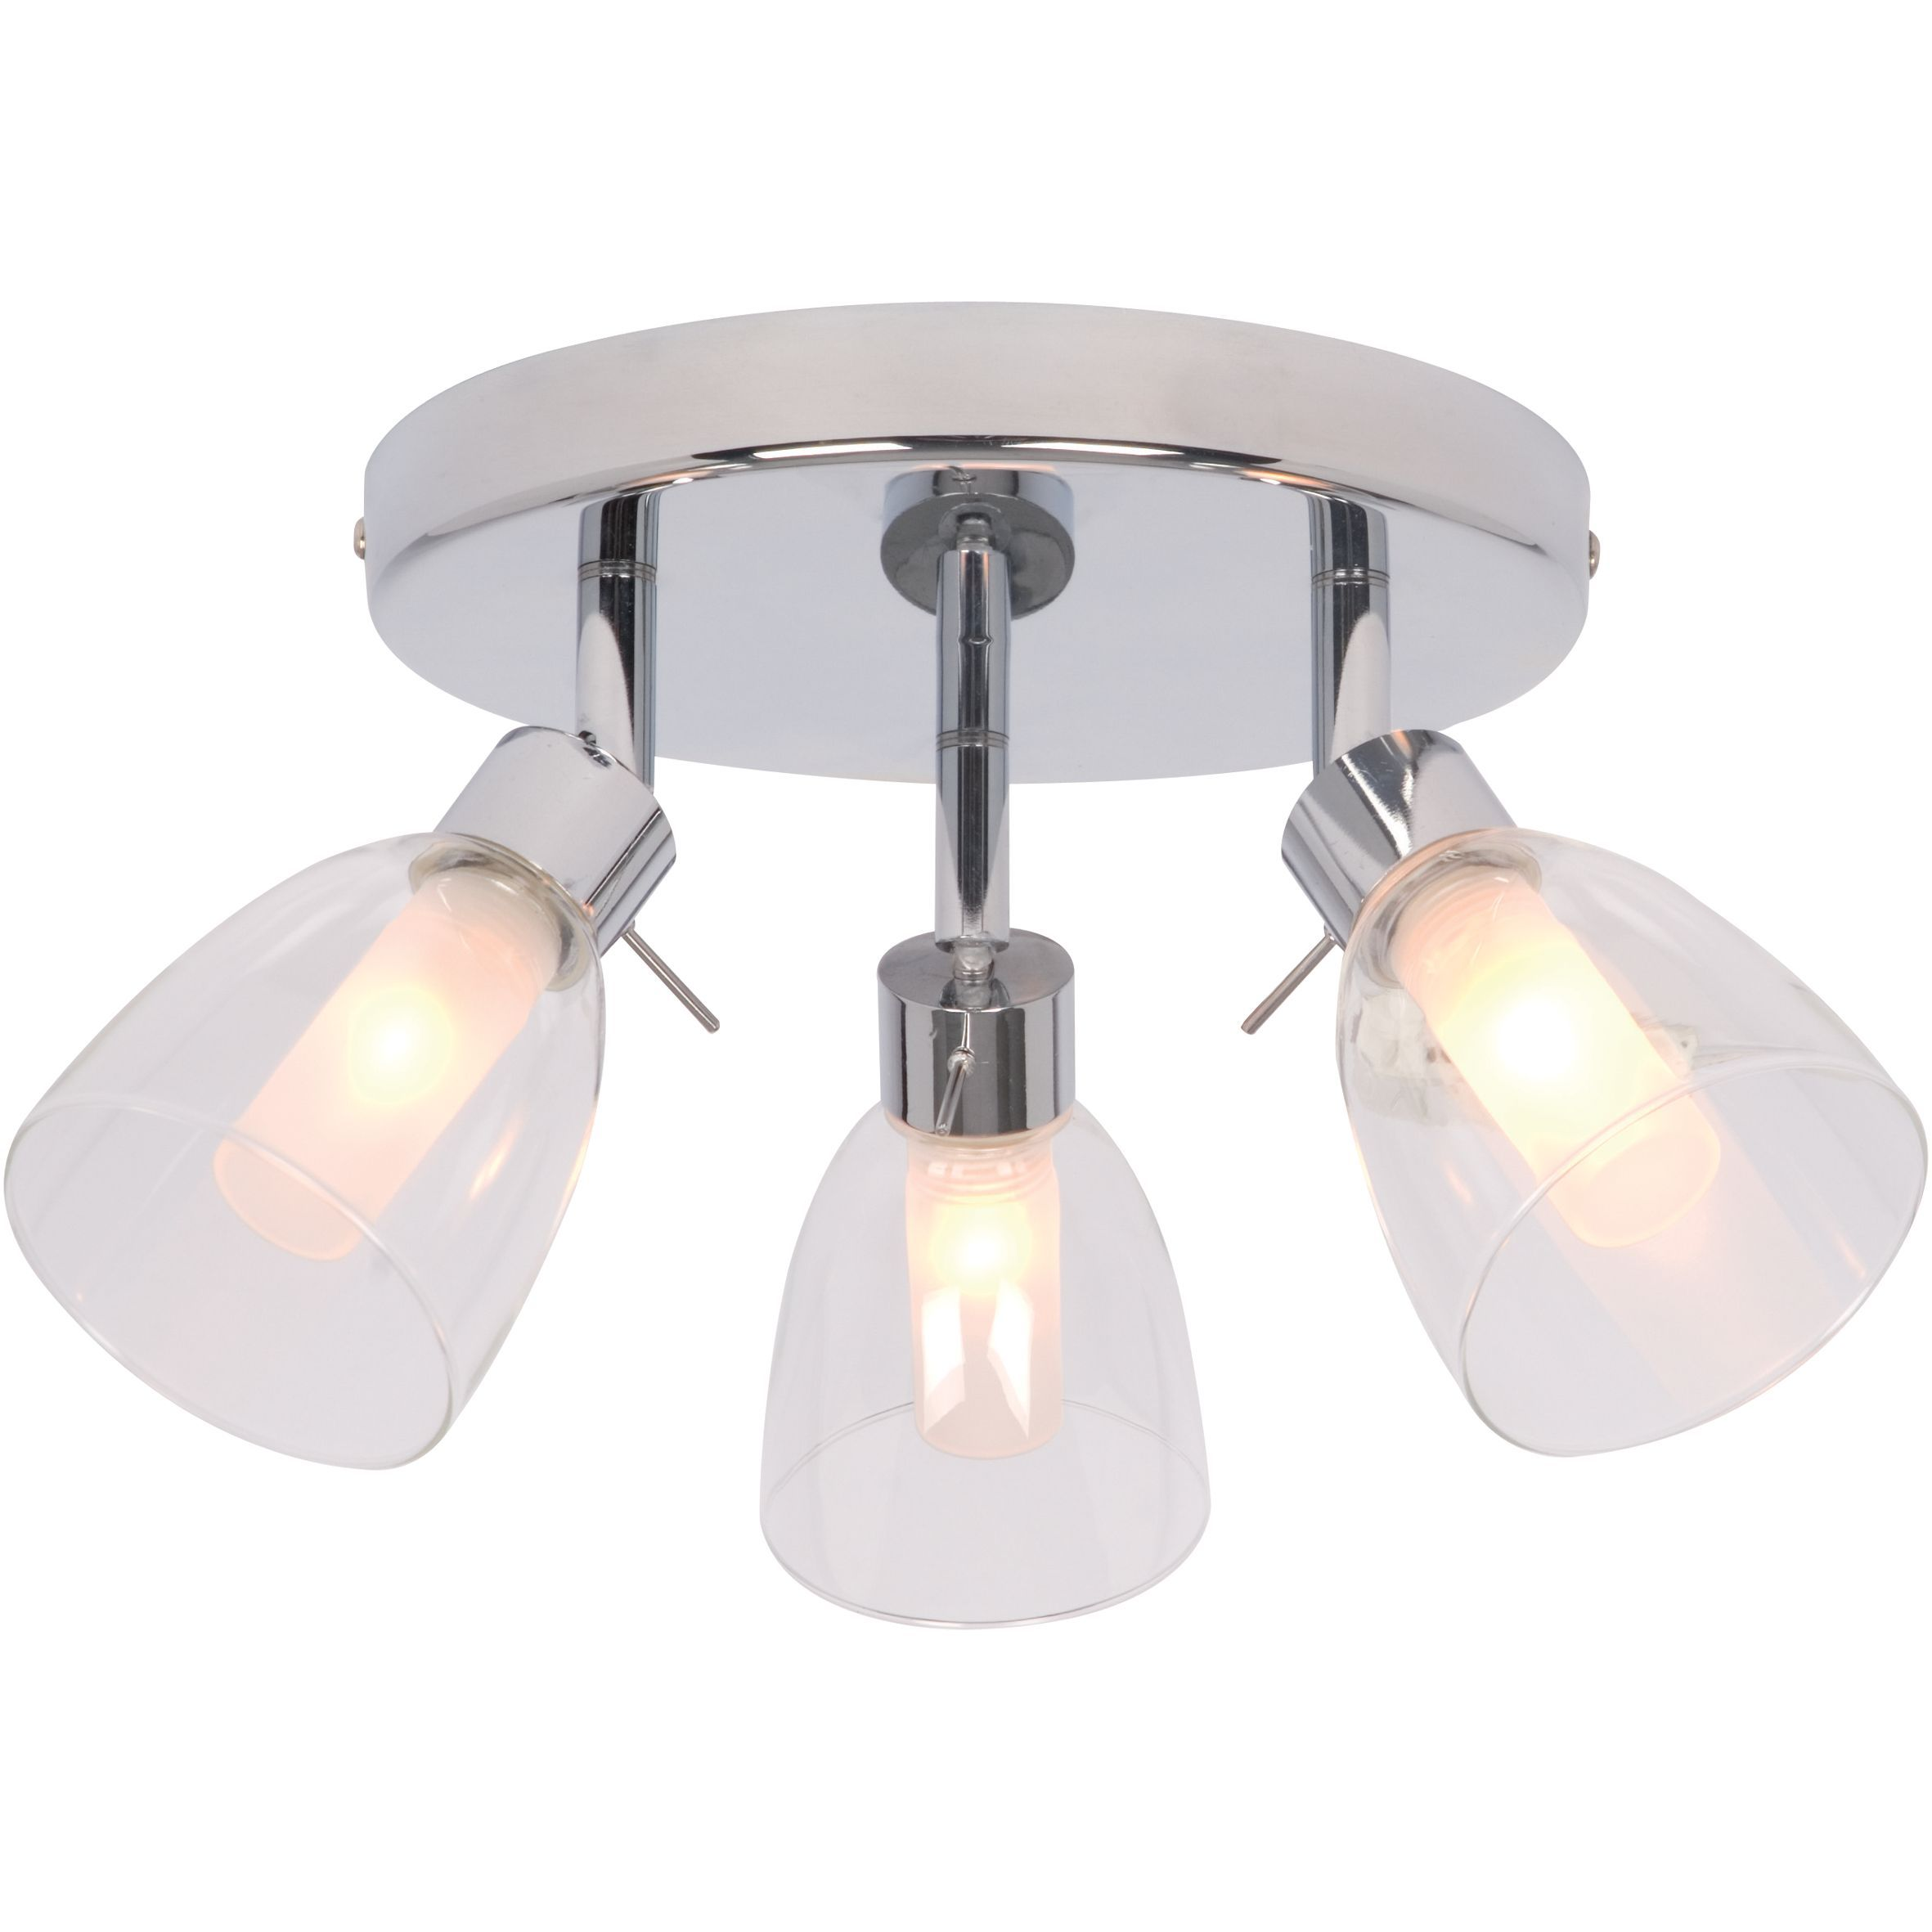 geni chrome plated 3 lamp bathroom spotlight departments 22180